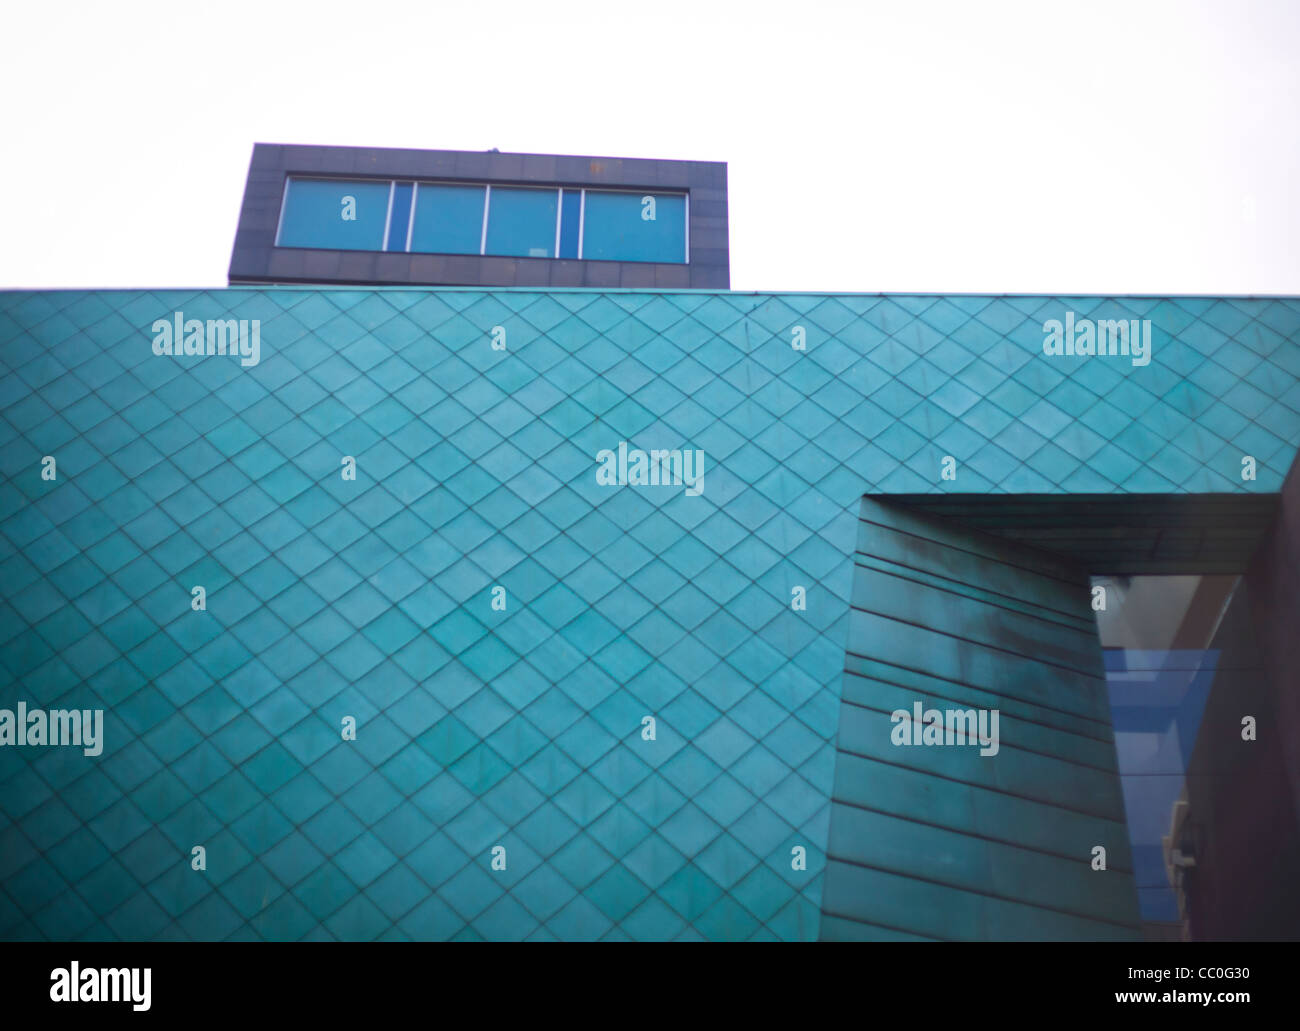 Exterior of the Radisson Blu hotel on Glasgow's Argyle street showing verdigris of the copper cladding - Stock Image